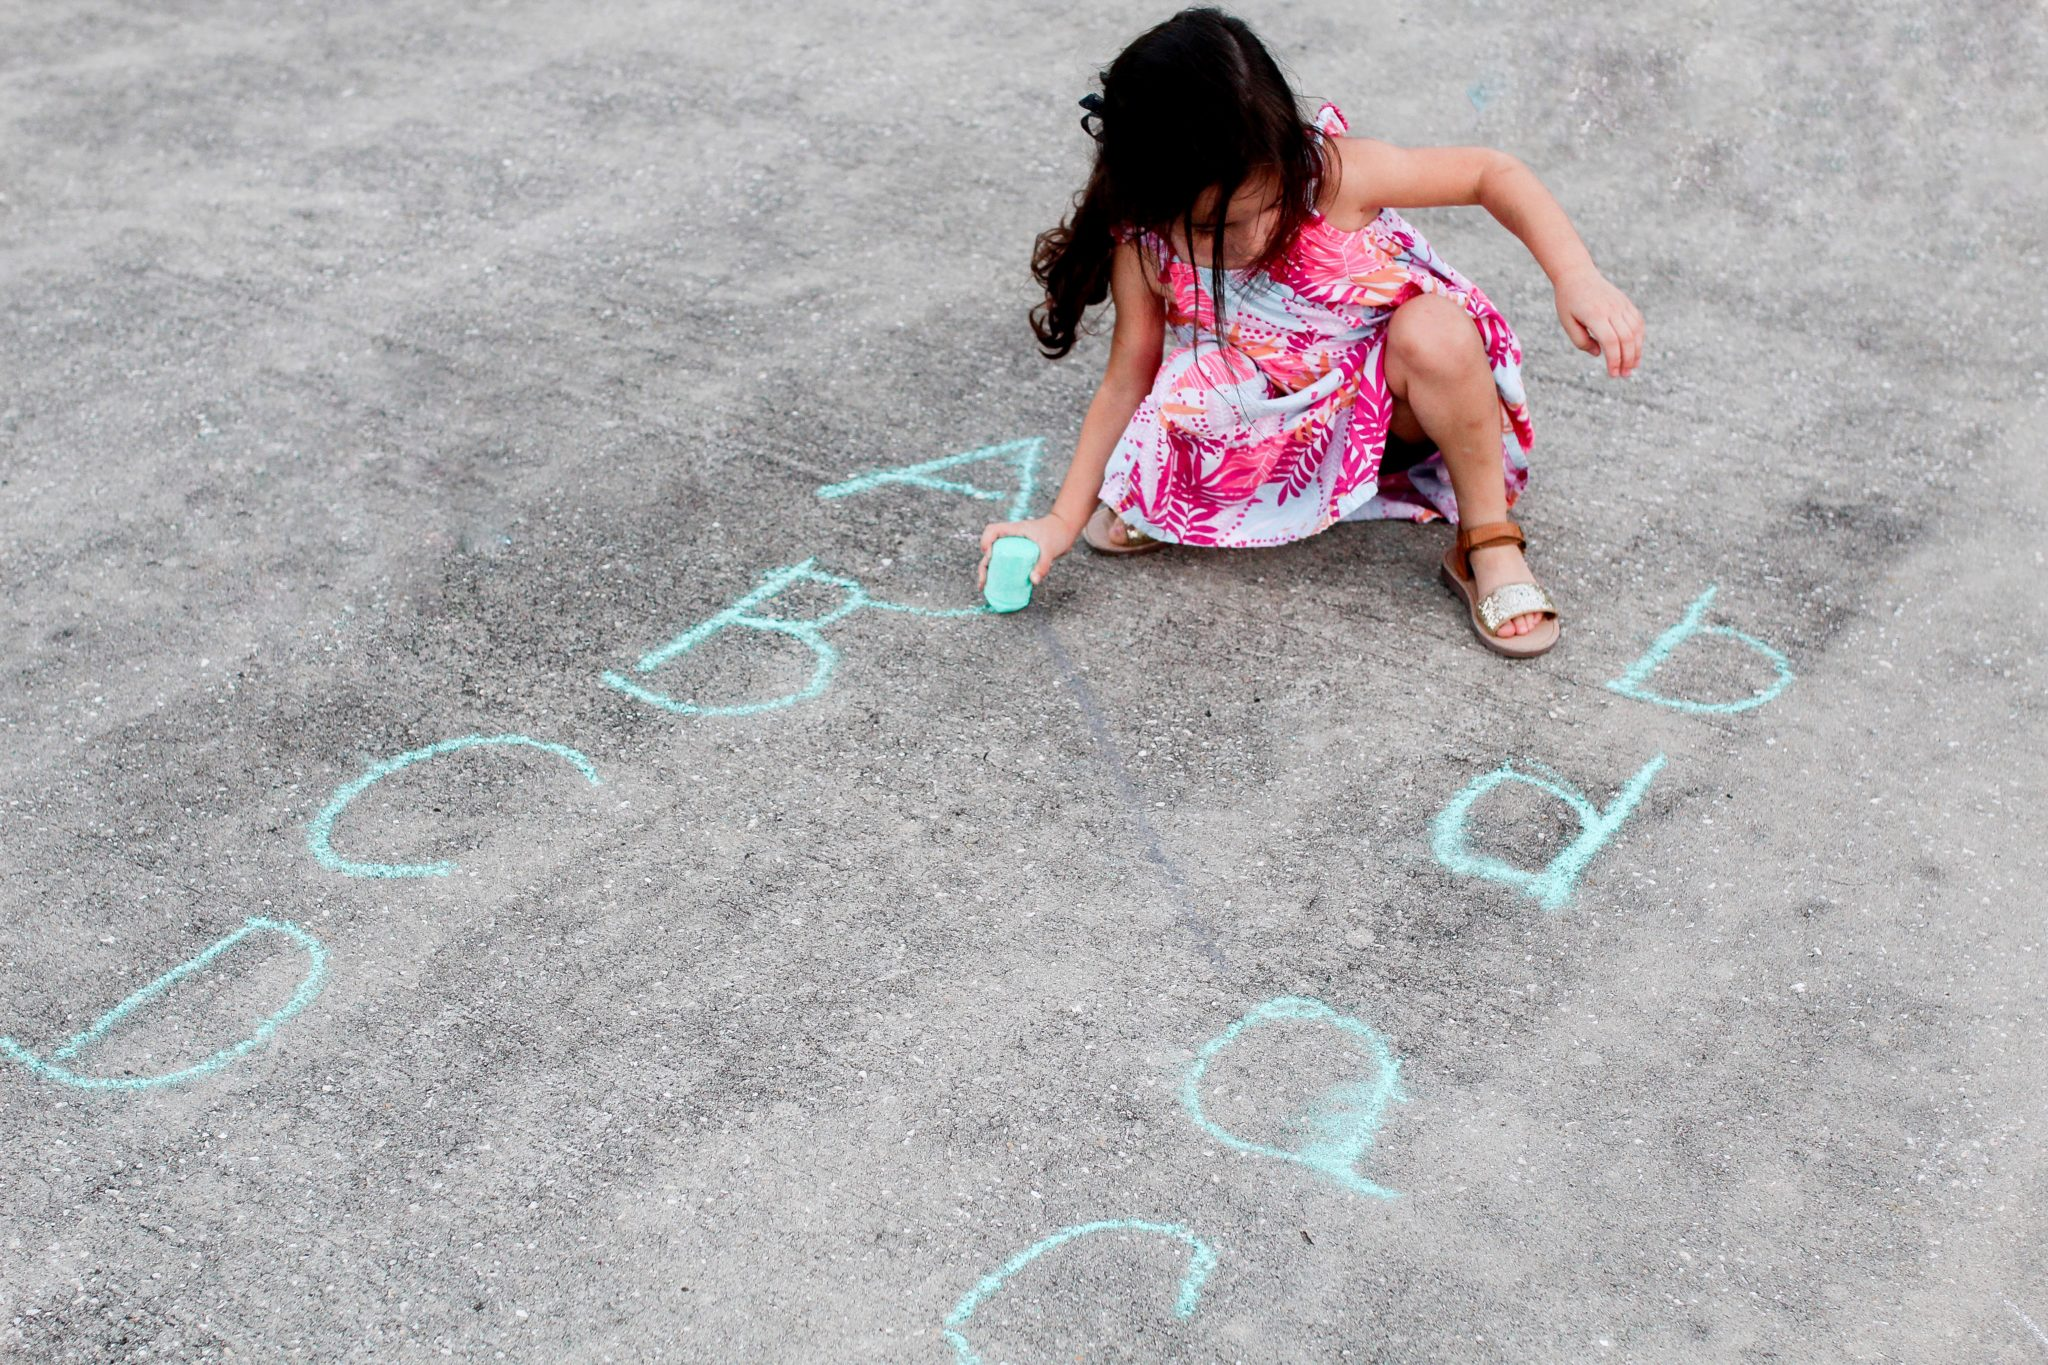 #sidewalkchalkgames #learningwithsidewalkchalk #sidewalkchalk, sidewalk chalk games for adults, easy sidewalk chalk designs, fun things to do with chalk, sidewalk and driveway games, sidewalk chalk lesson plans, chalk playground games, sidewalk chalk maze, fun things to do with chalk inside